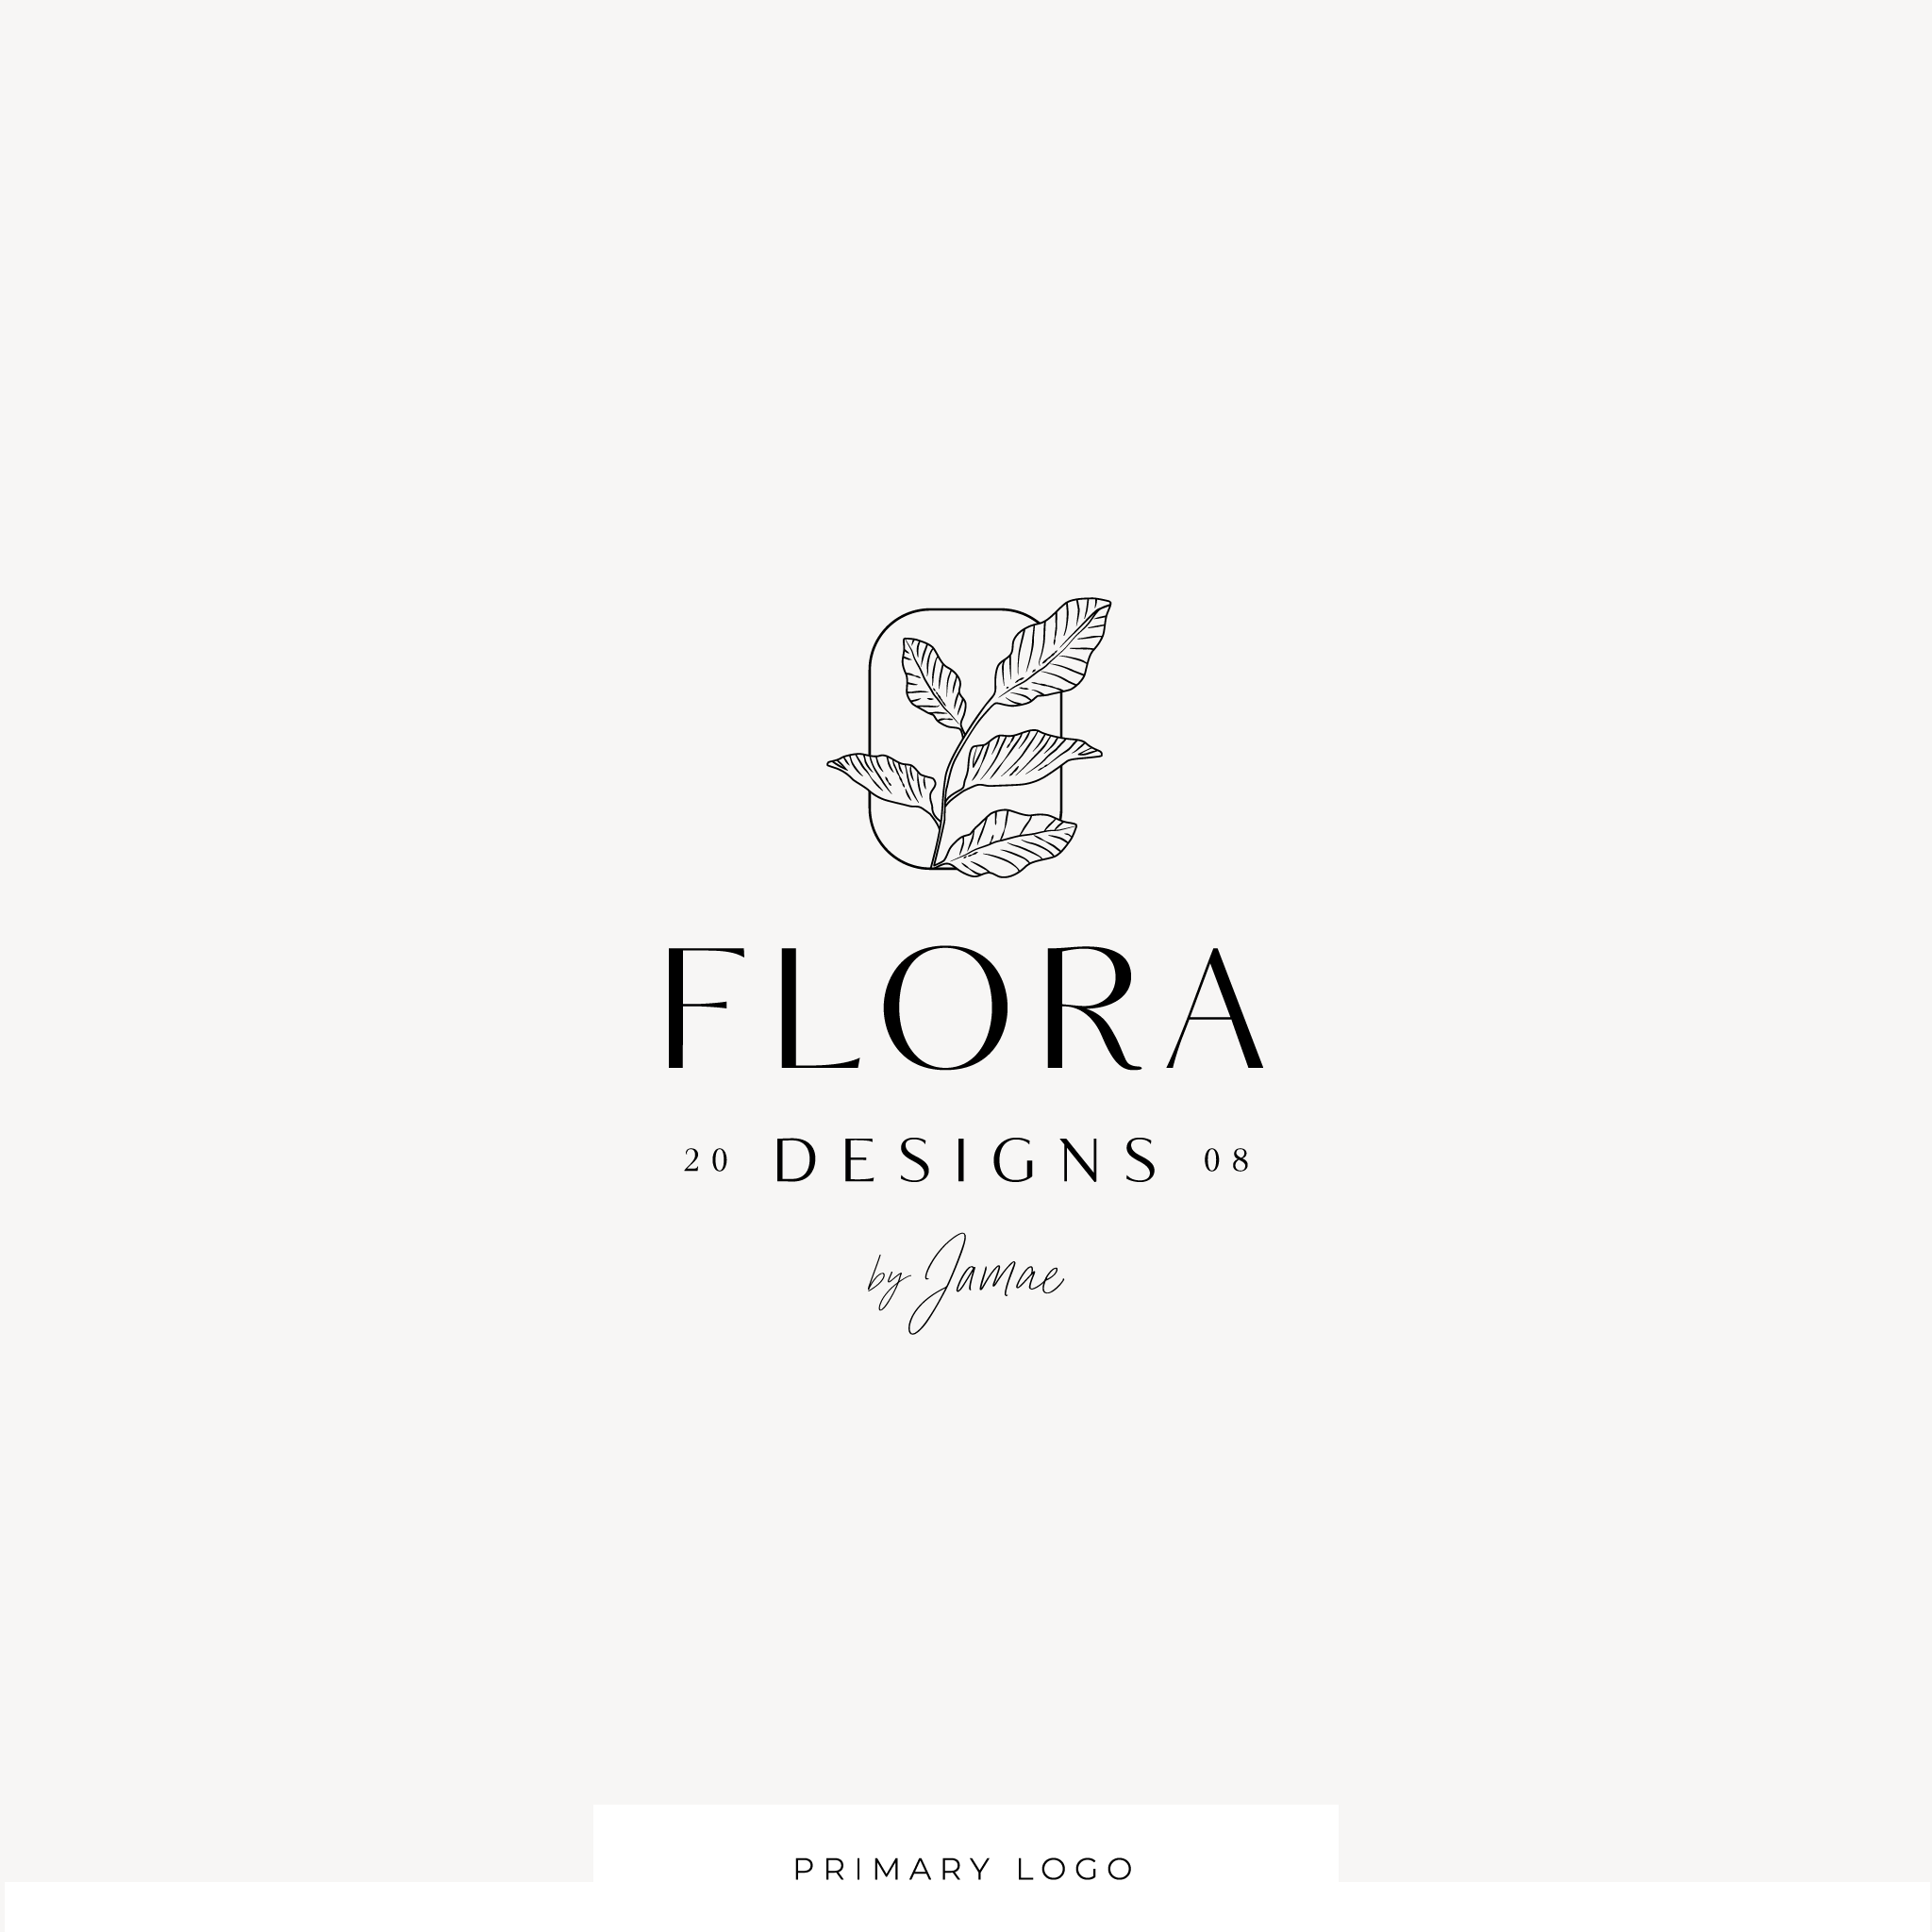 Flora_CL_Primary.png